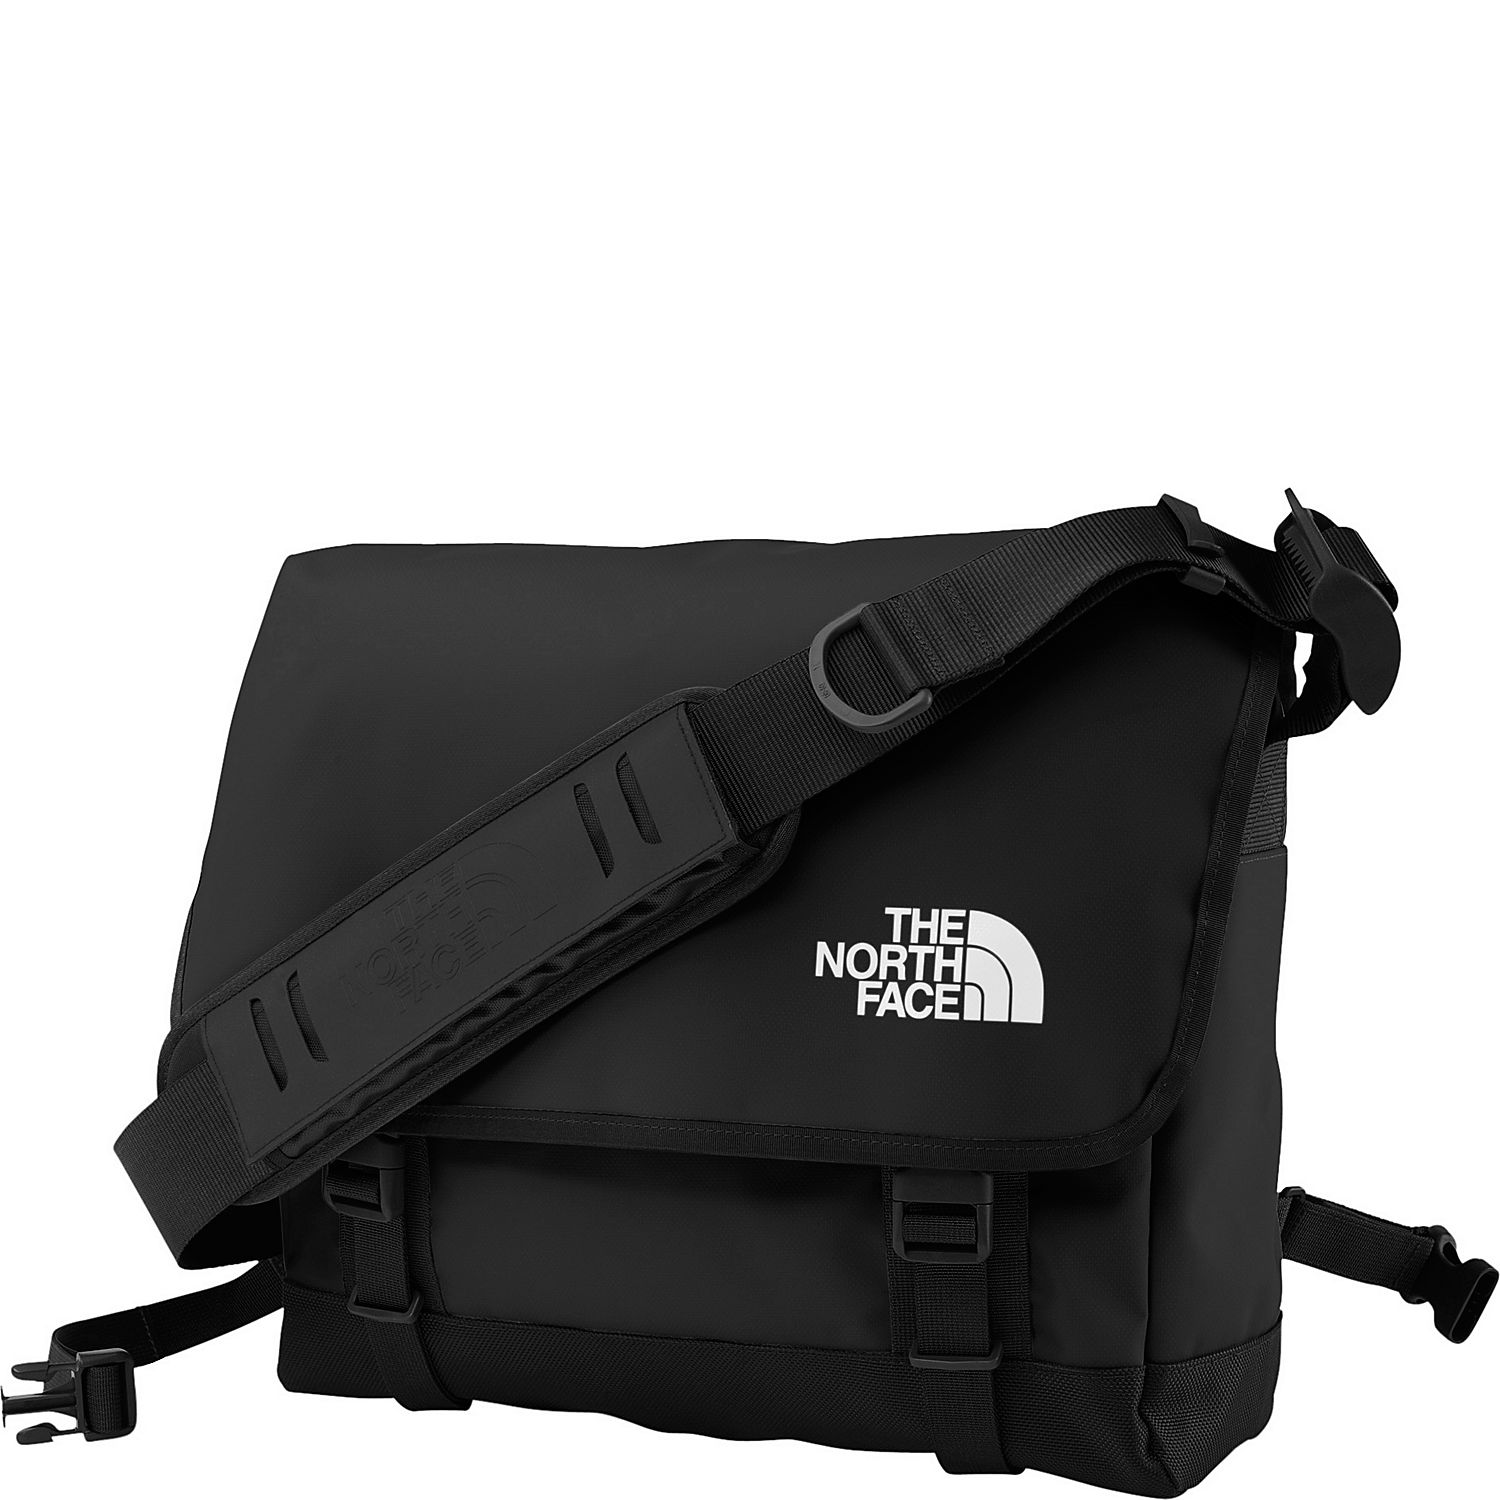 The North Face Schoudertas Base Camp Messenger Bag : The north face base camp messenger bag large ebags